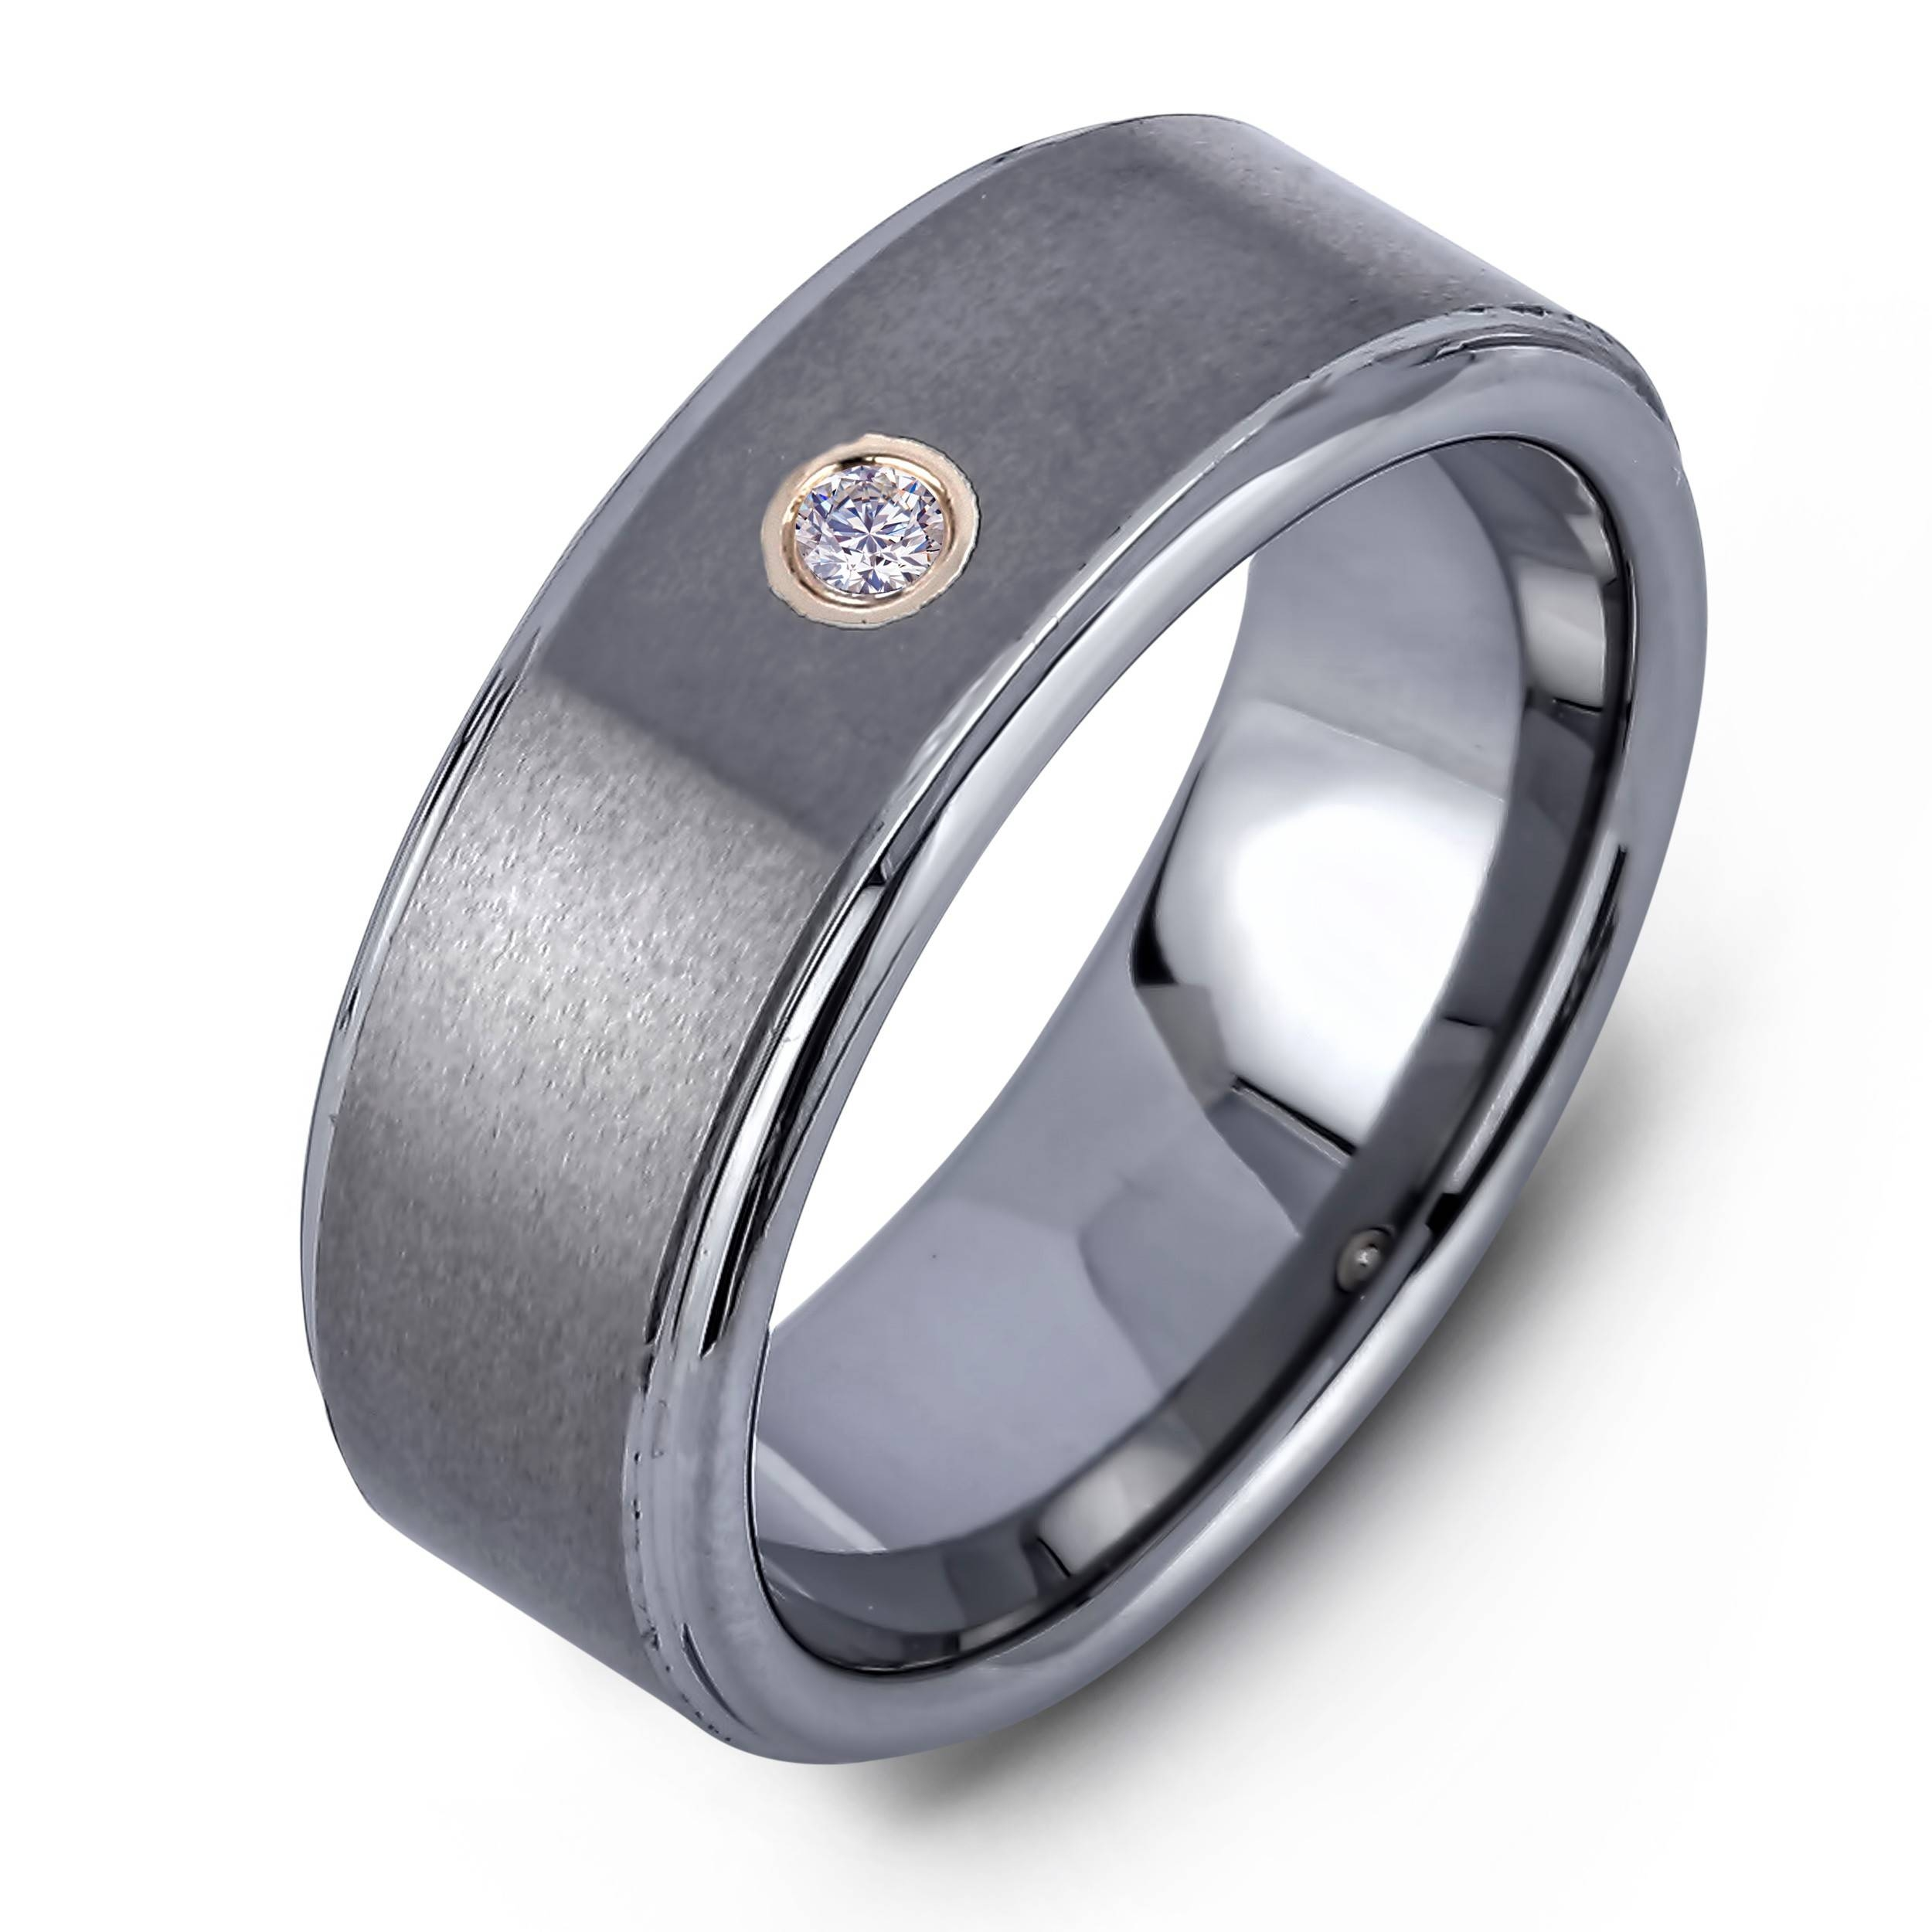 Lugaro | Men's Diamond Tungsten Wedding Band Throughout Men's Titanium Wedding Bands With Diamonds (View 4 of 15)